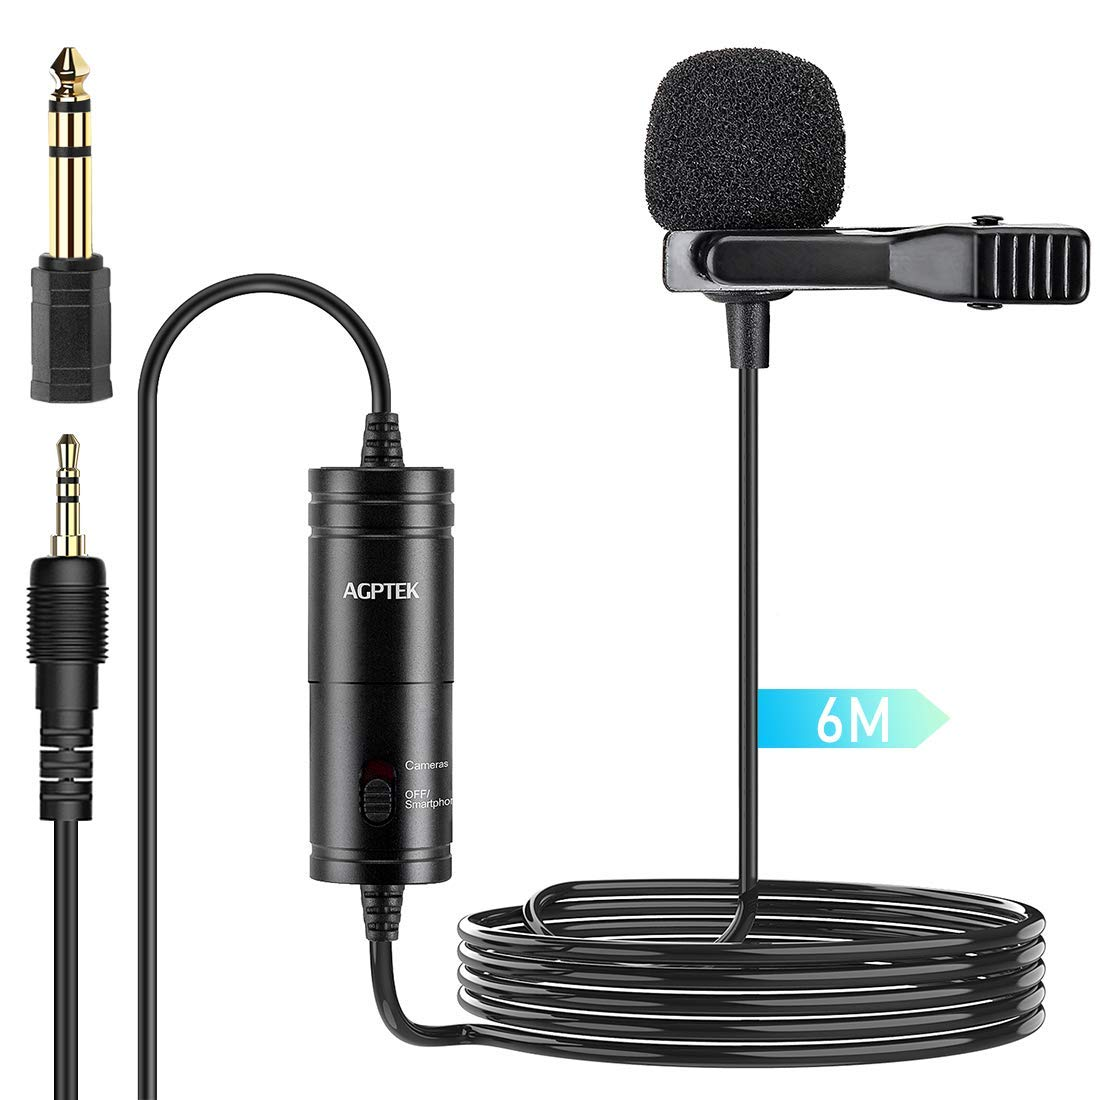 Lavalier Microphone, AGPTEK (236 in) Clip on Omnidirectional Condenser Lavalier Lapel Mic for Camera, DSLR, iPhone, Android, PC, Interview, Video conferencing, Podcast,Recording